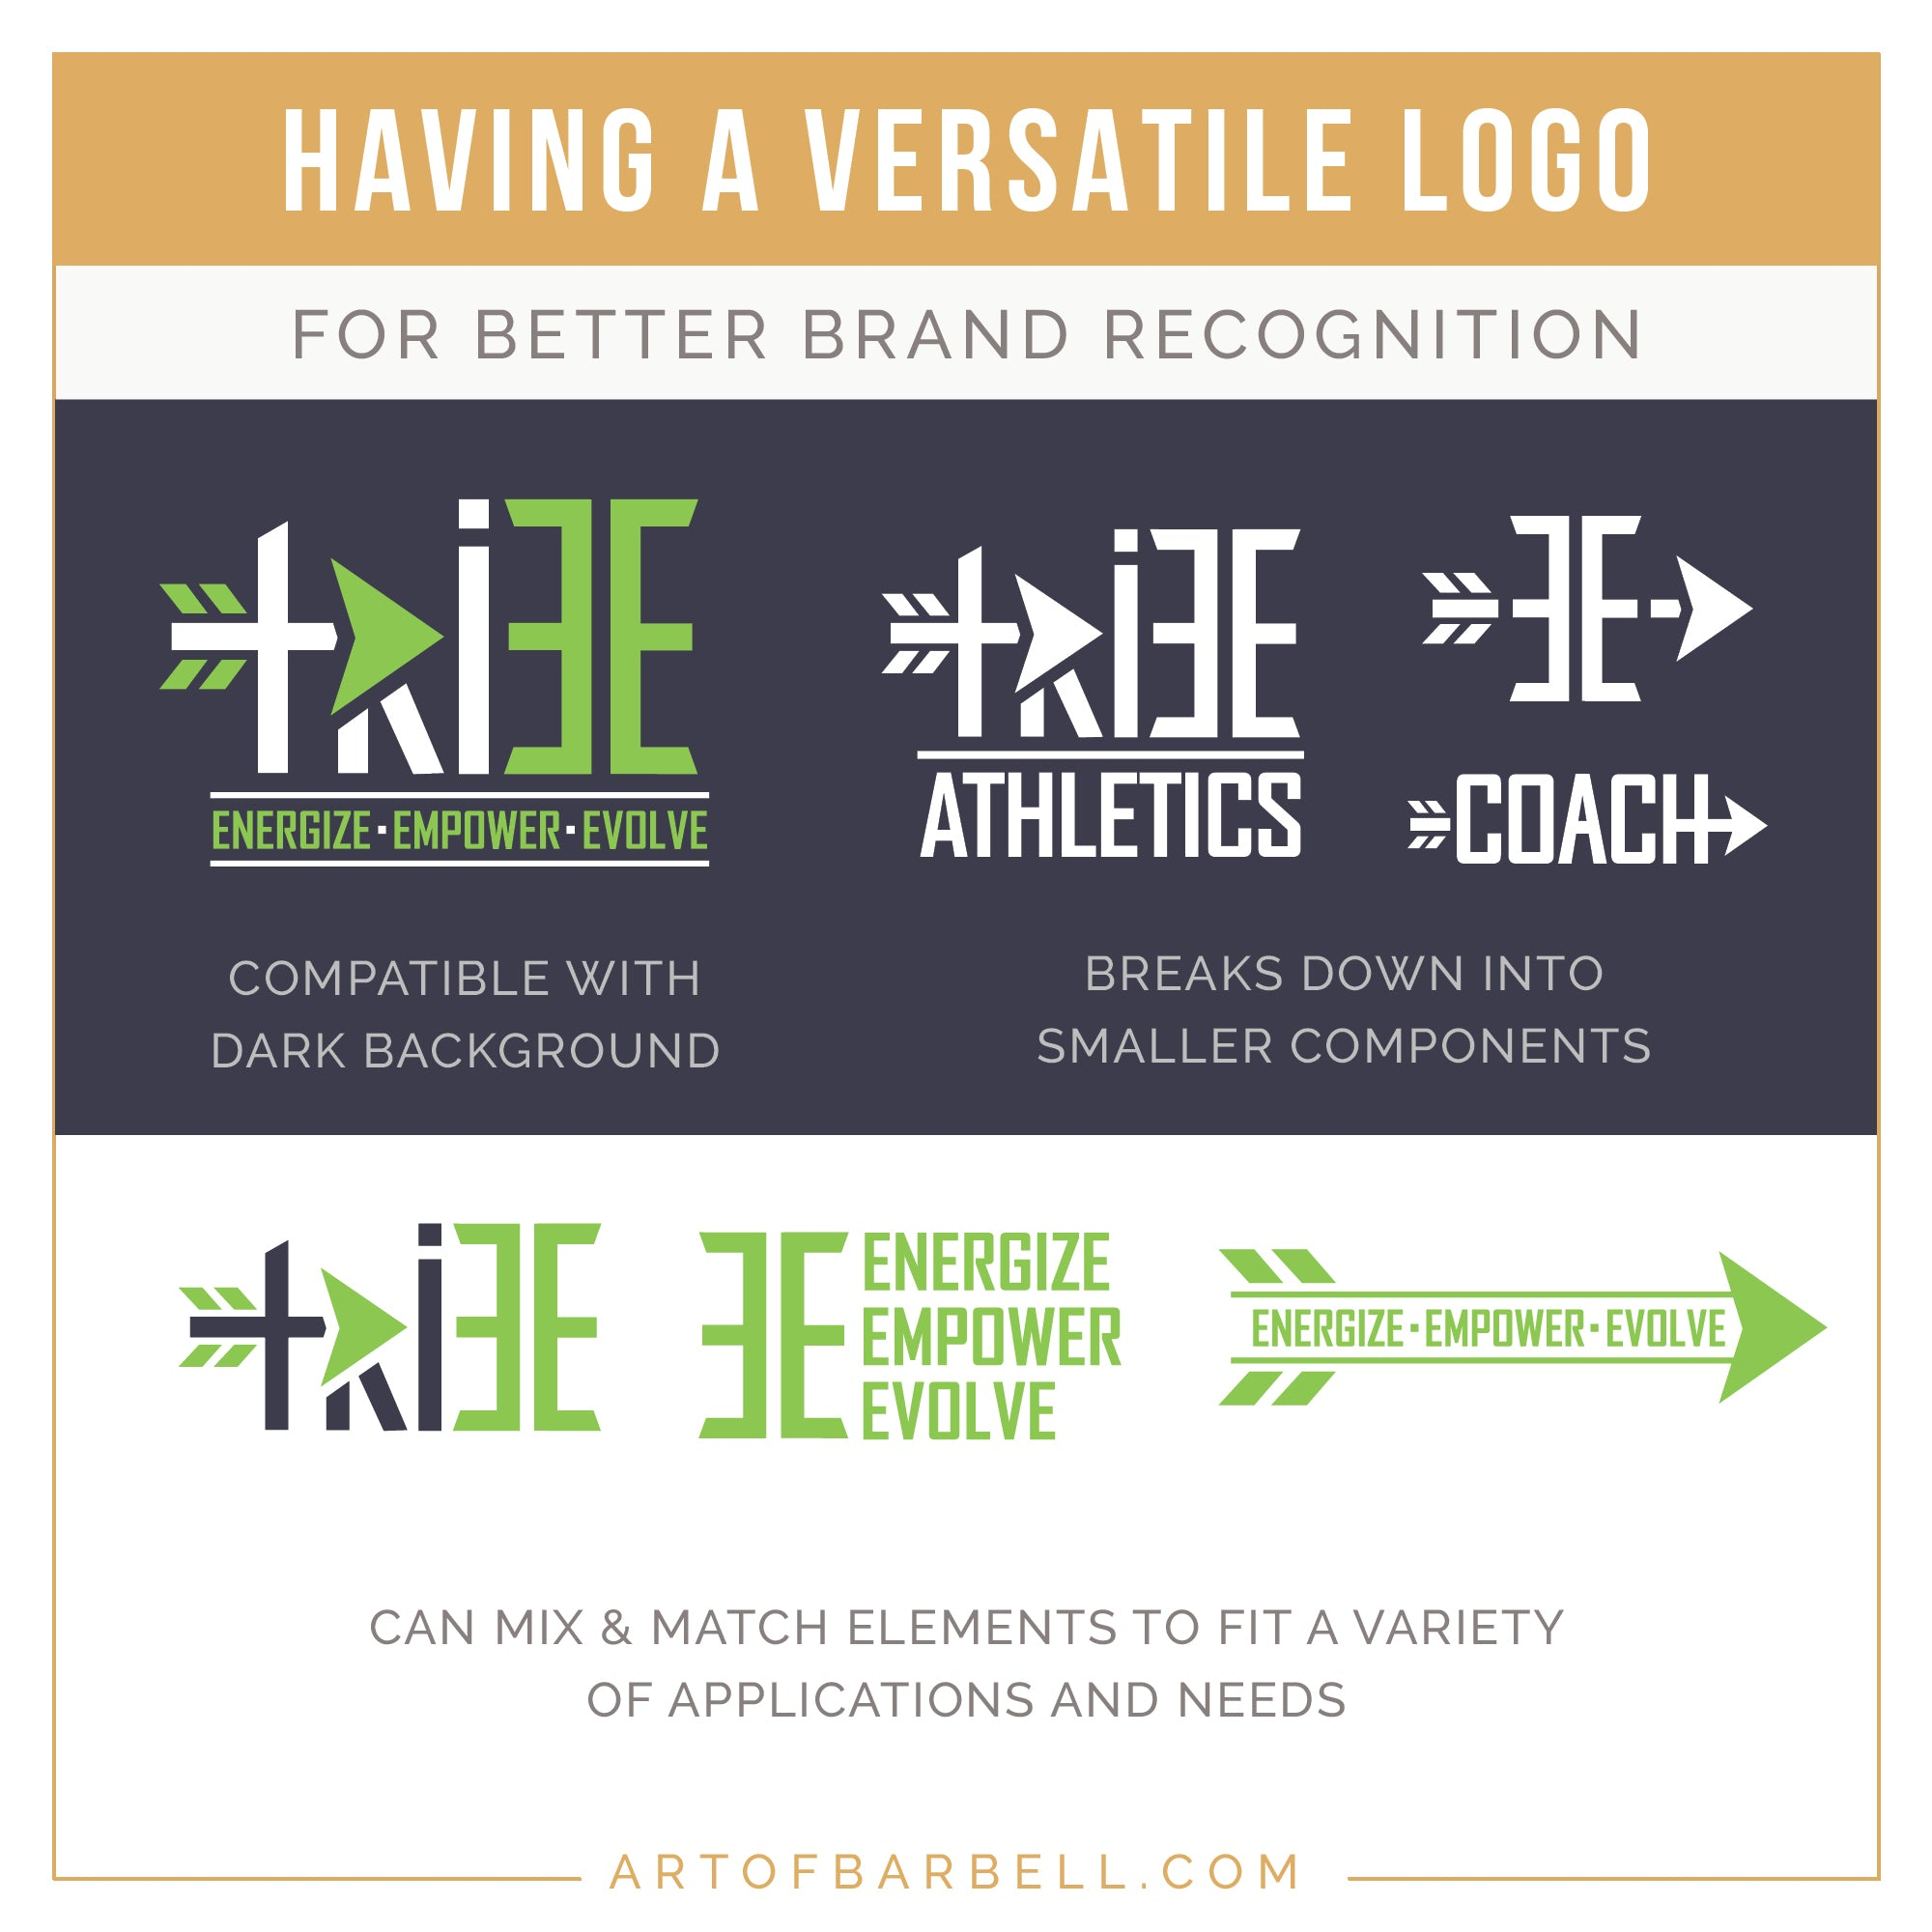 Have a versatile Logo design that you can use for a variety of applications - @artofbarbell_